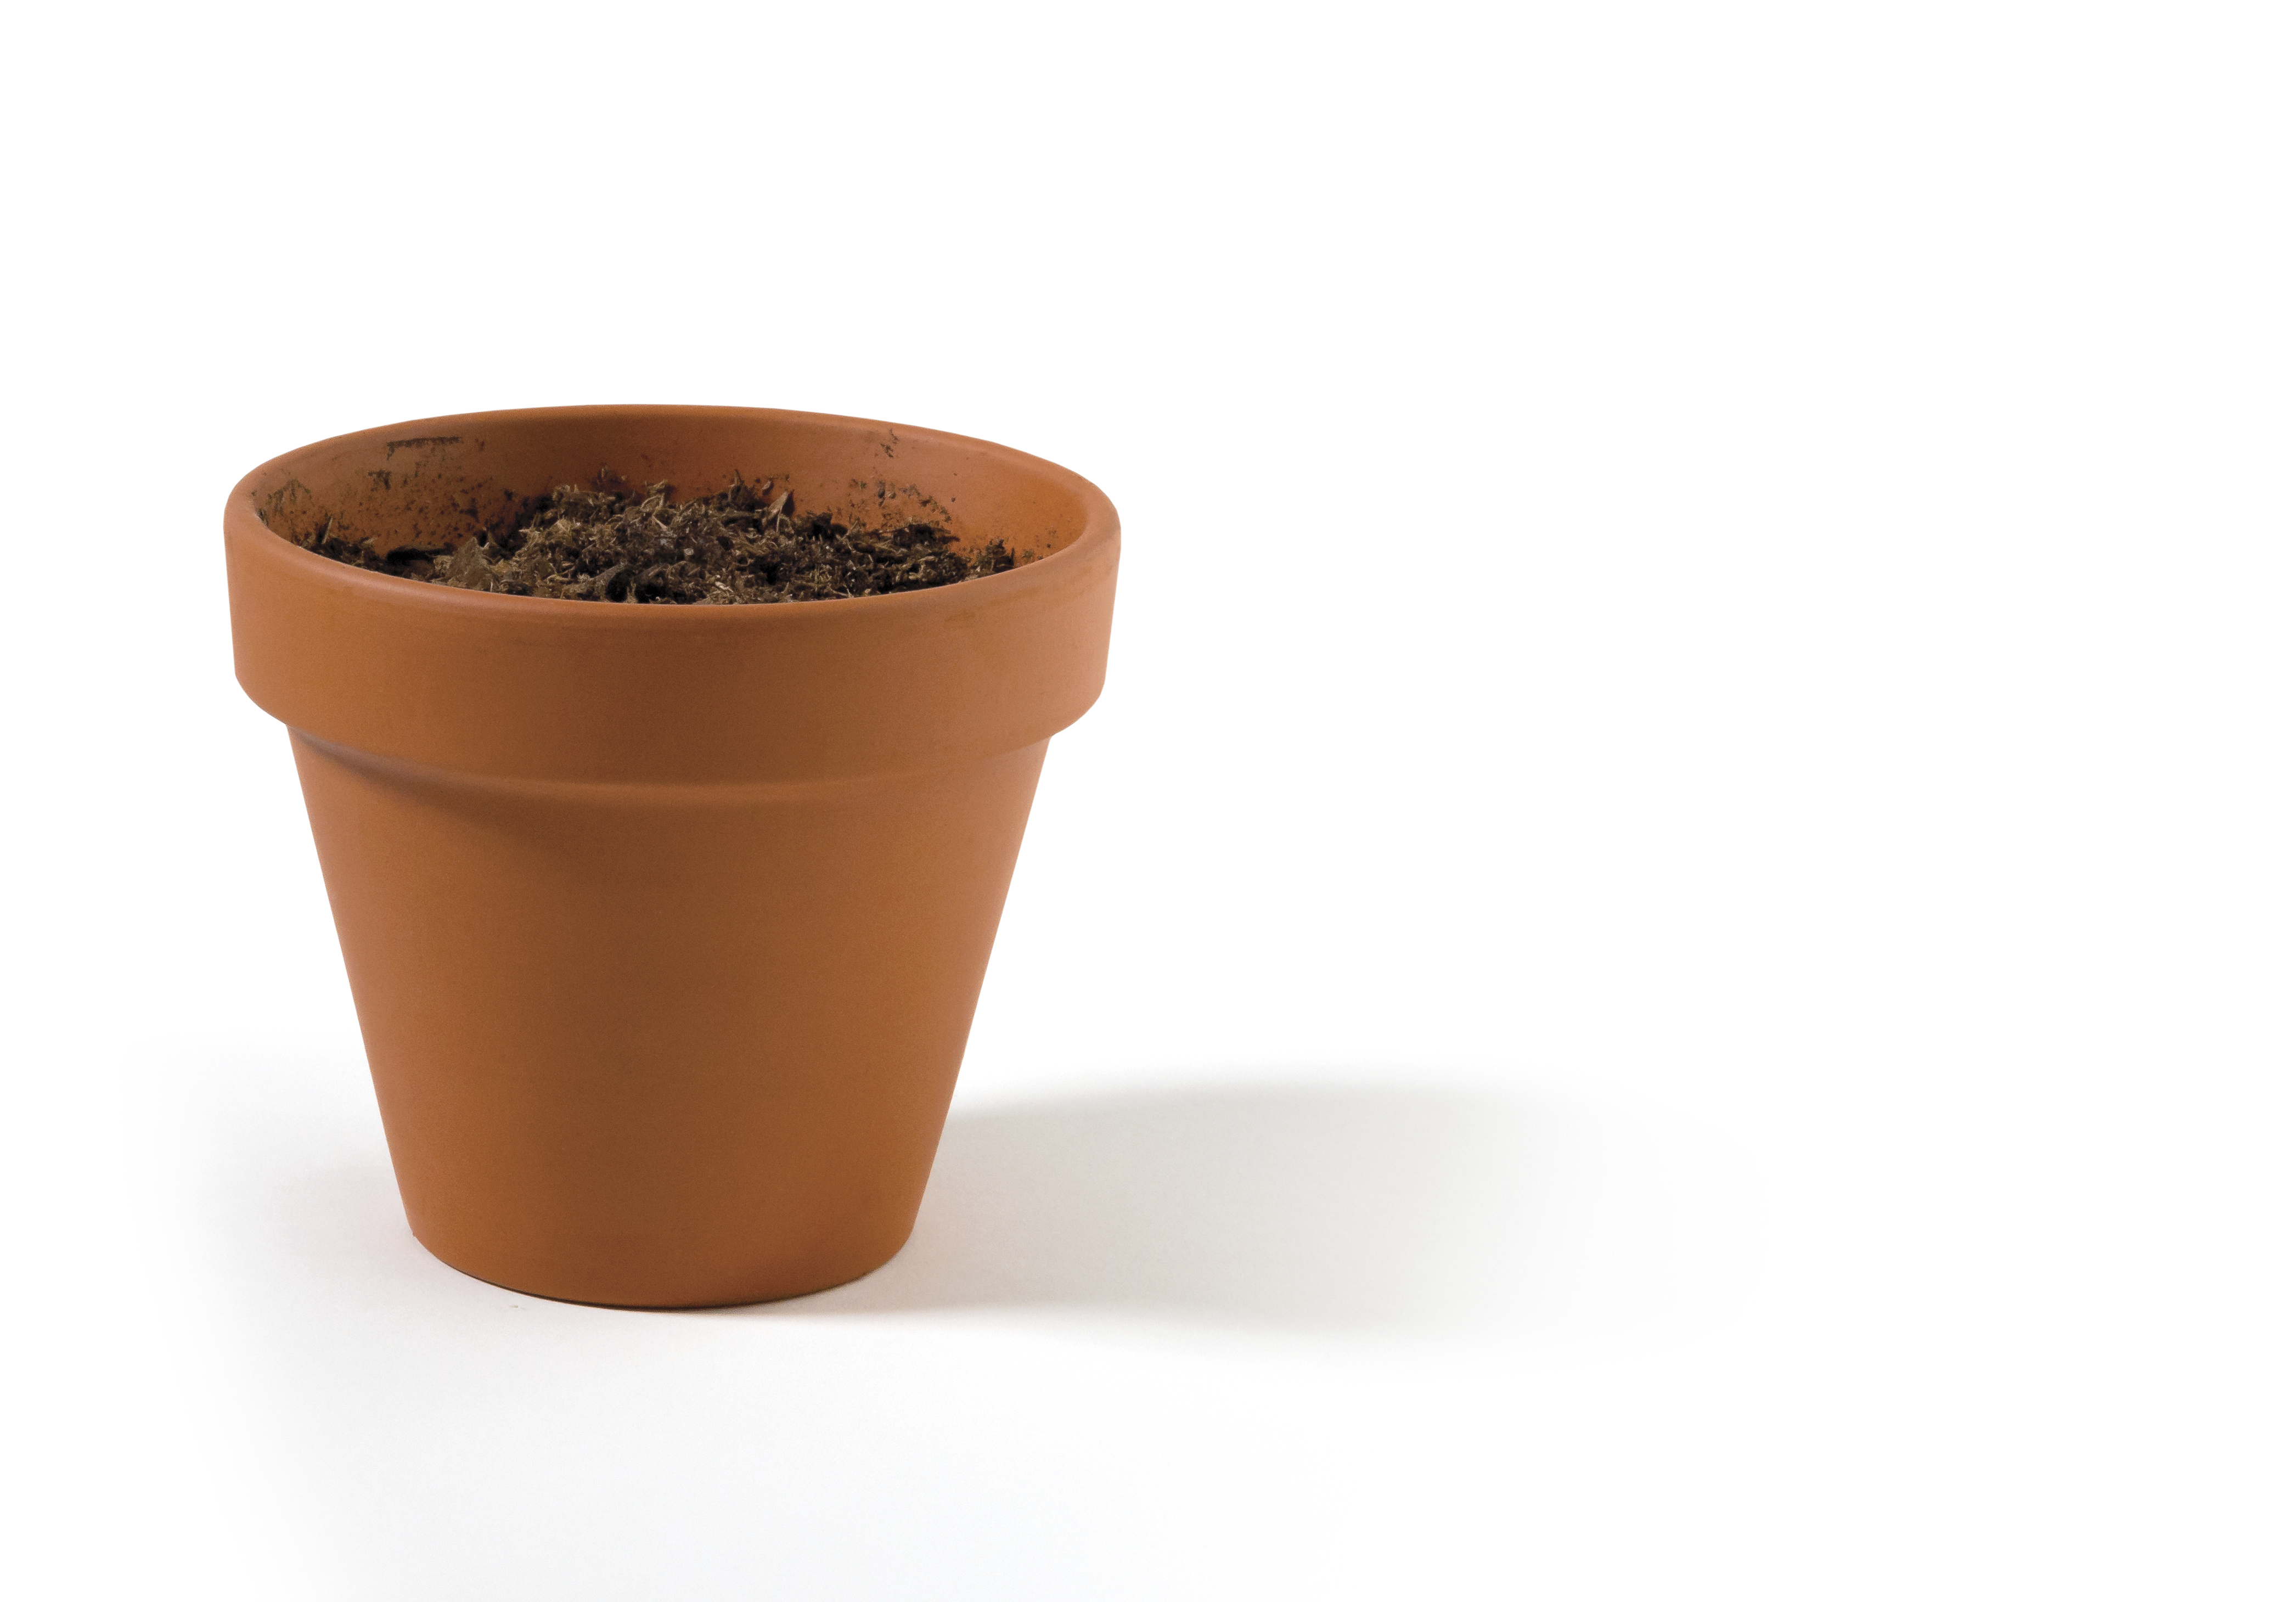 A small terra-cotta pot filled with dirt.